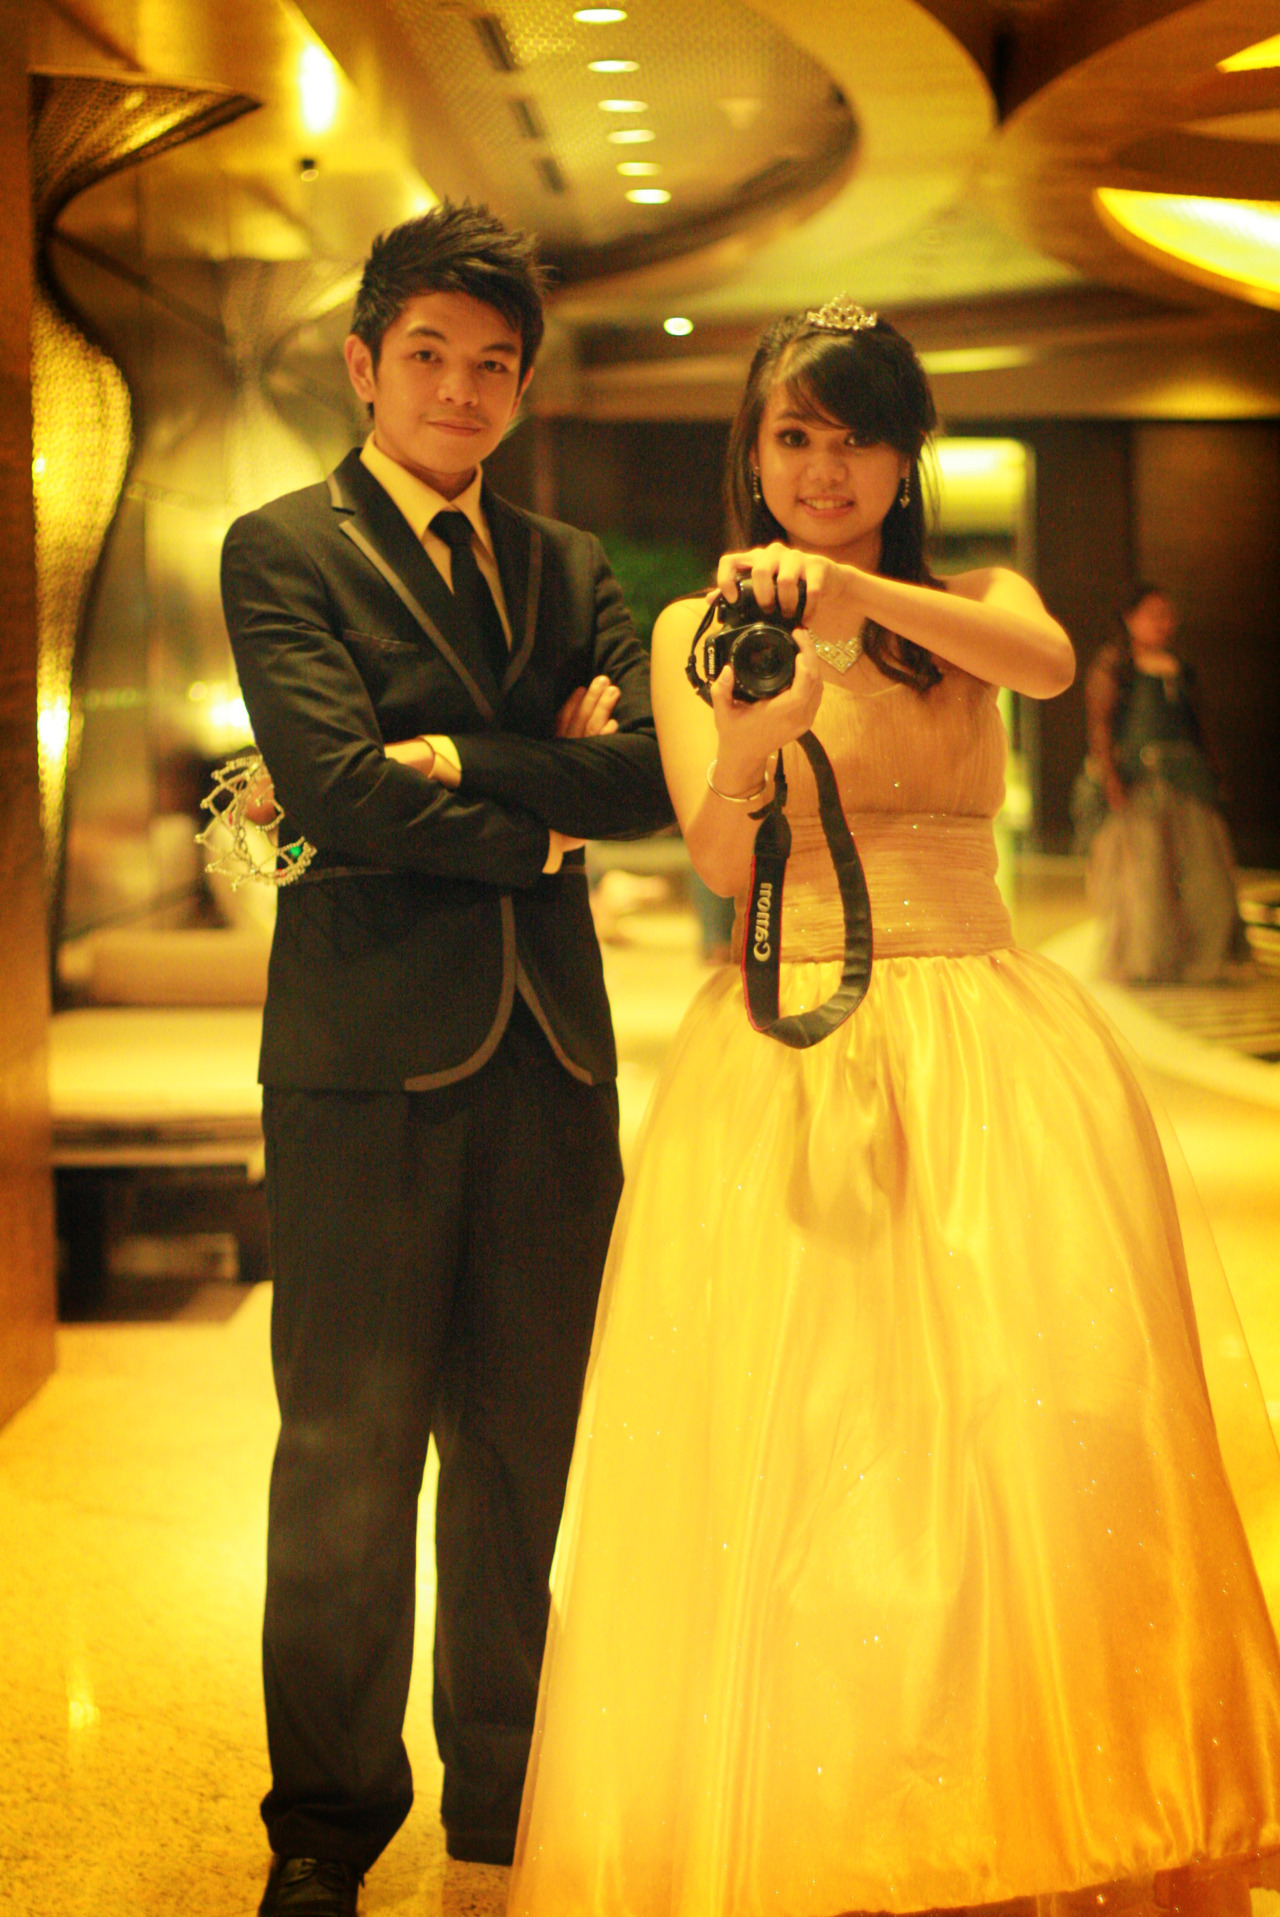 Me and my Prom Date Clarissa Quadra. :)